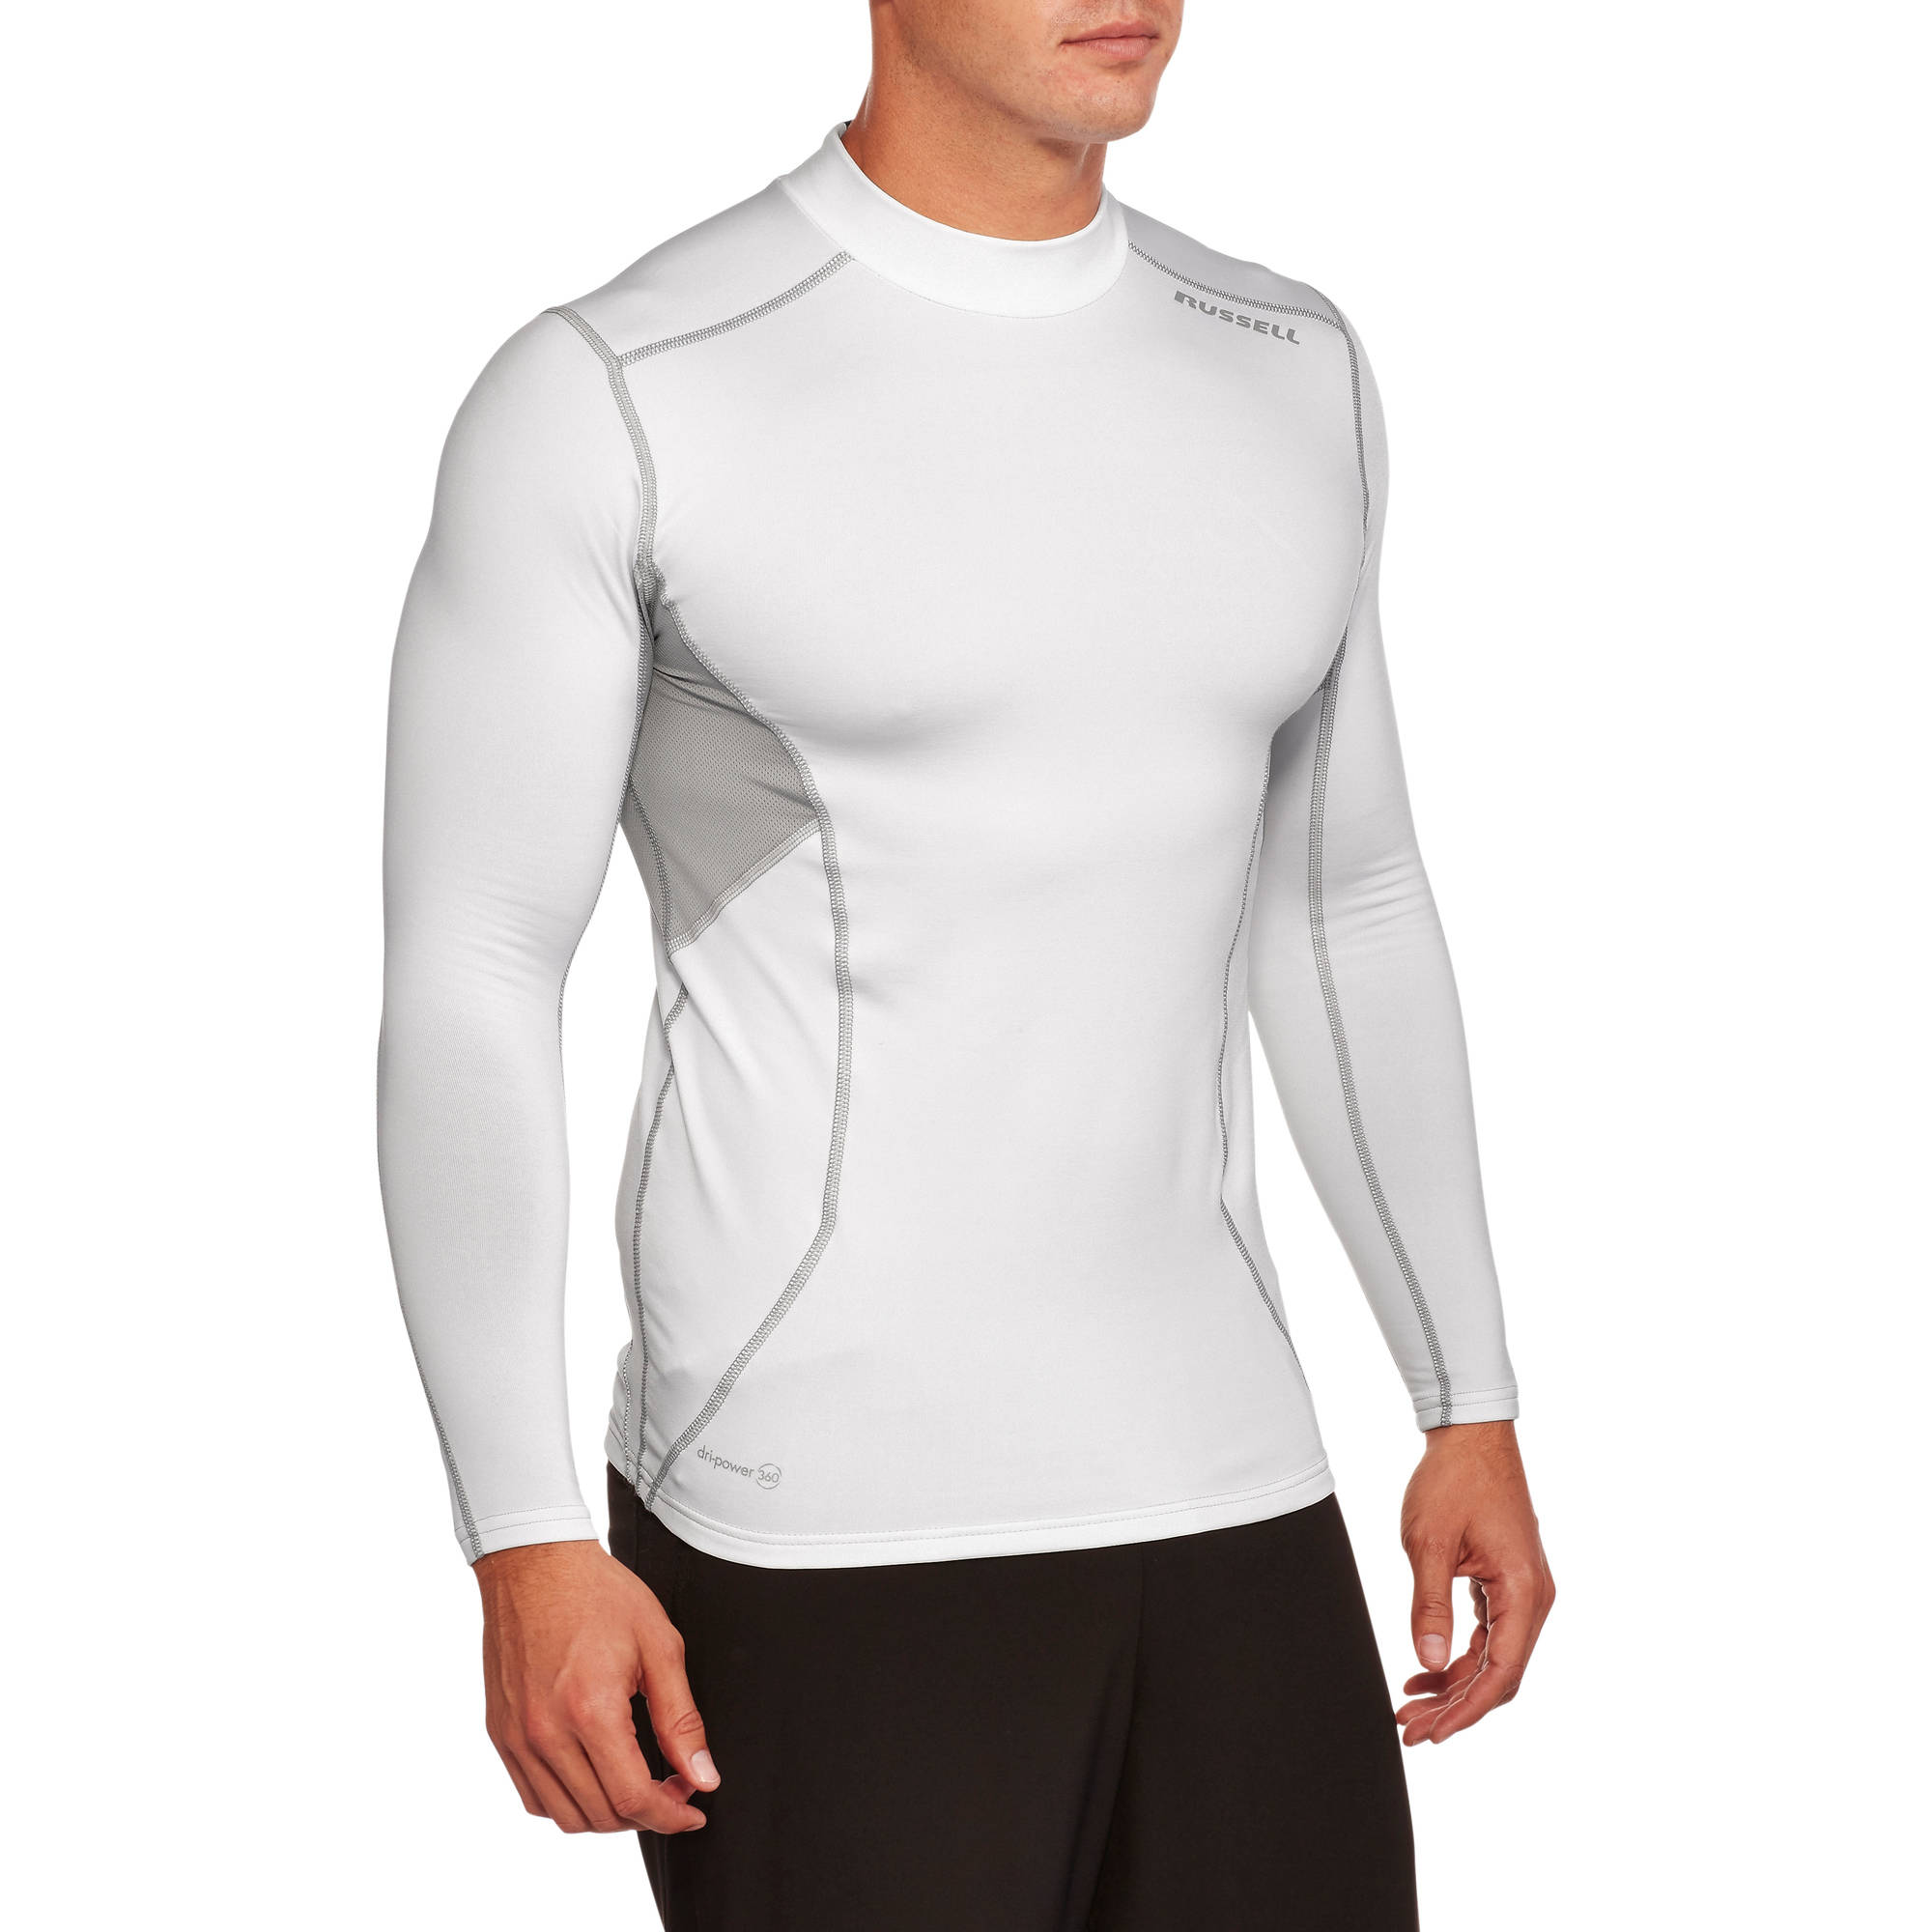 Russell Big Men's Mock Neck Cold Compression Long Sleeve Tee